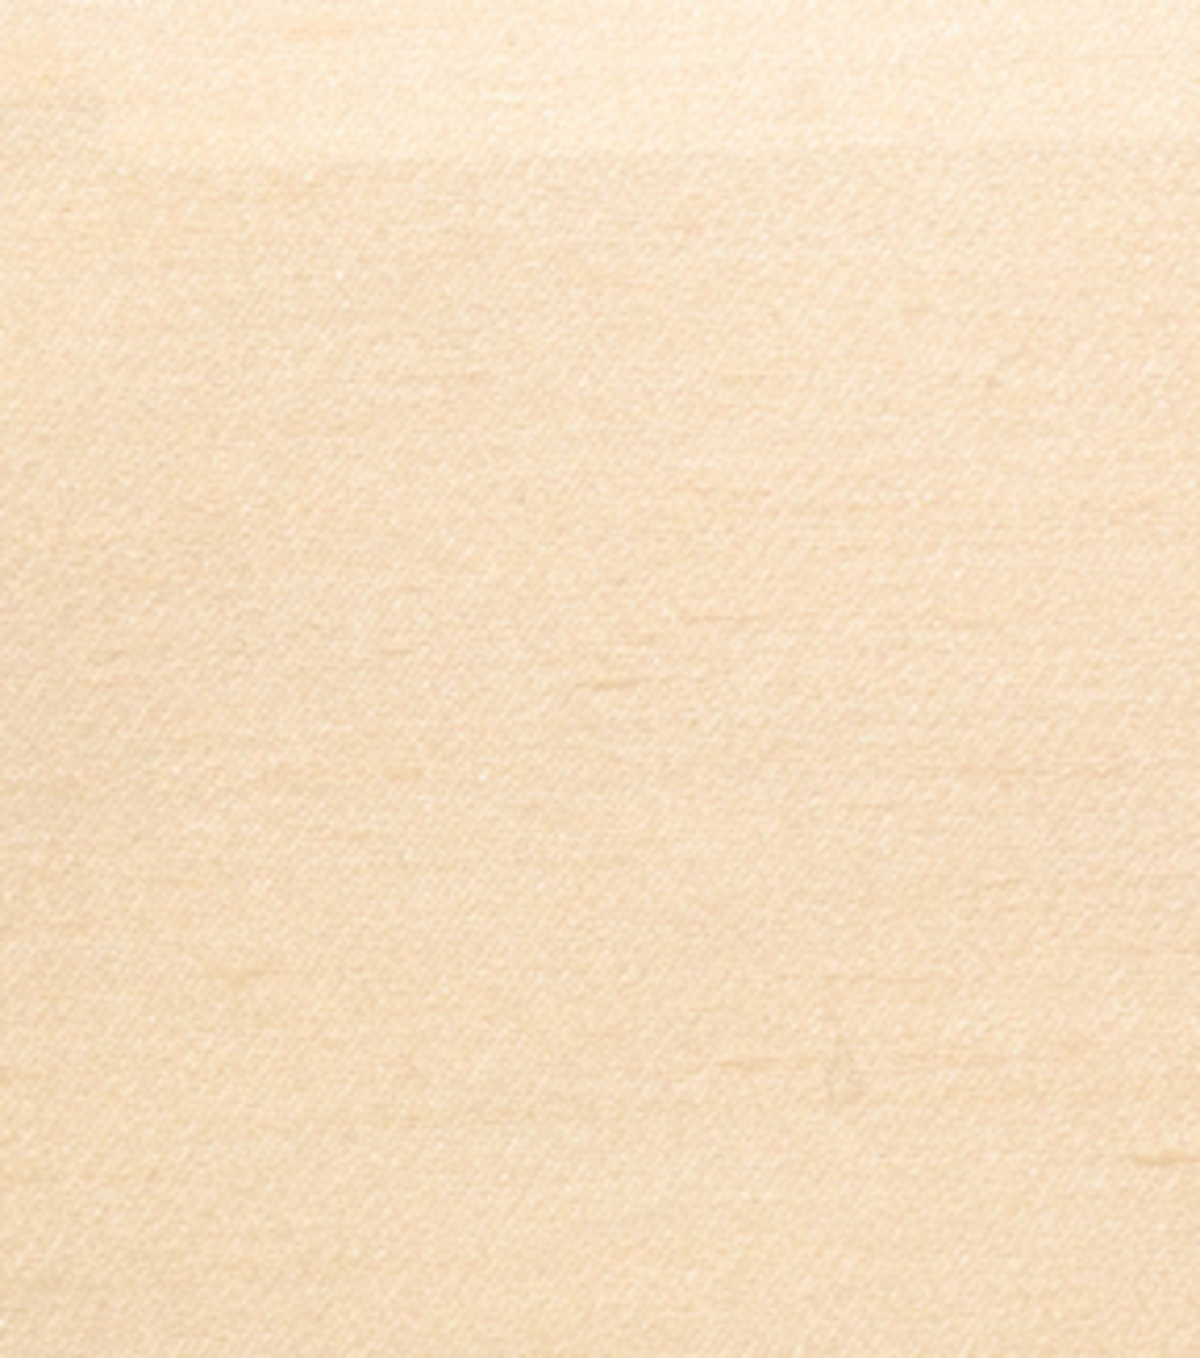 Home Decor 8\u0022x8\u0022 Fabric Swatch-Signature Series Antique Satin Rice